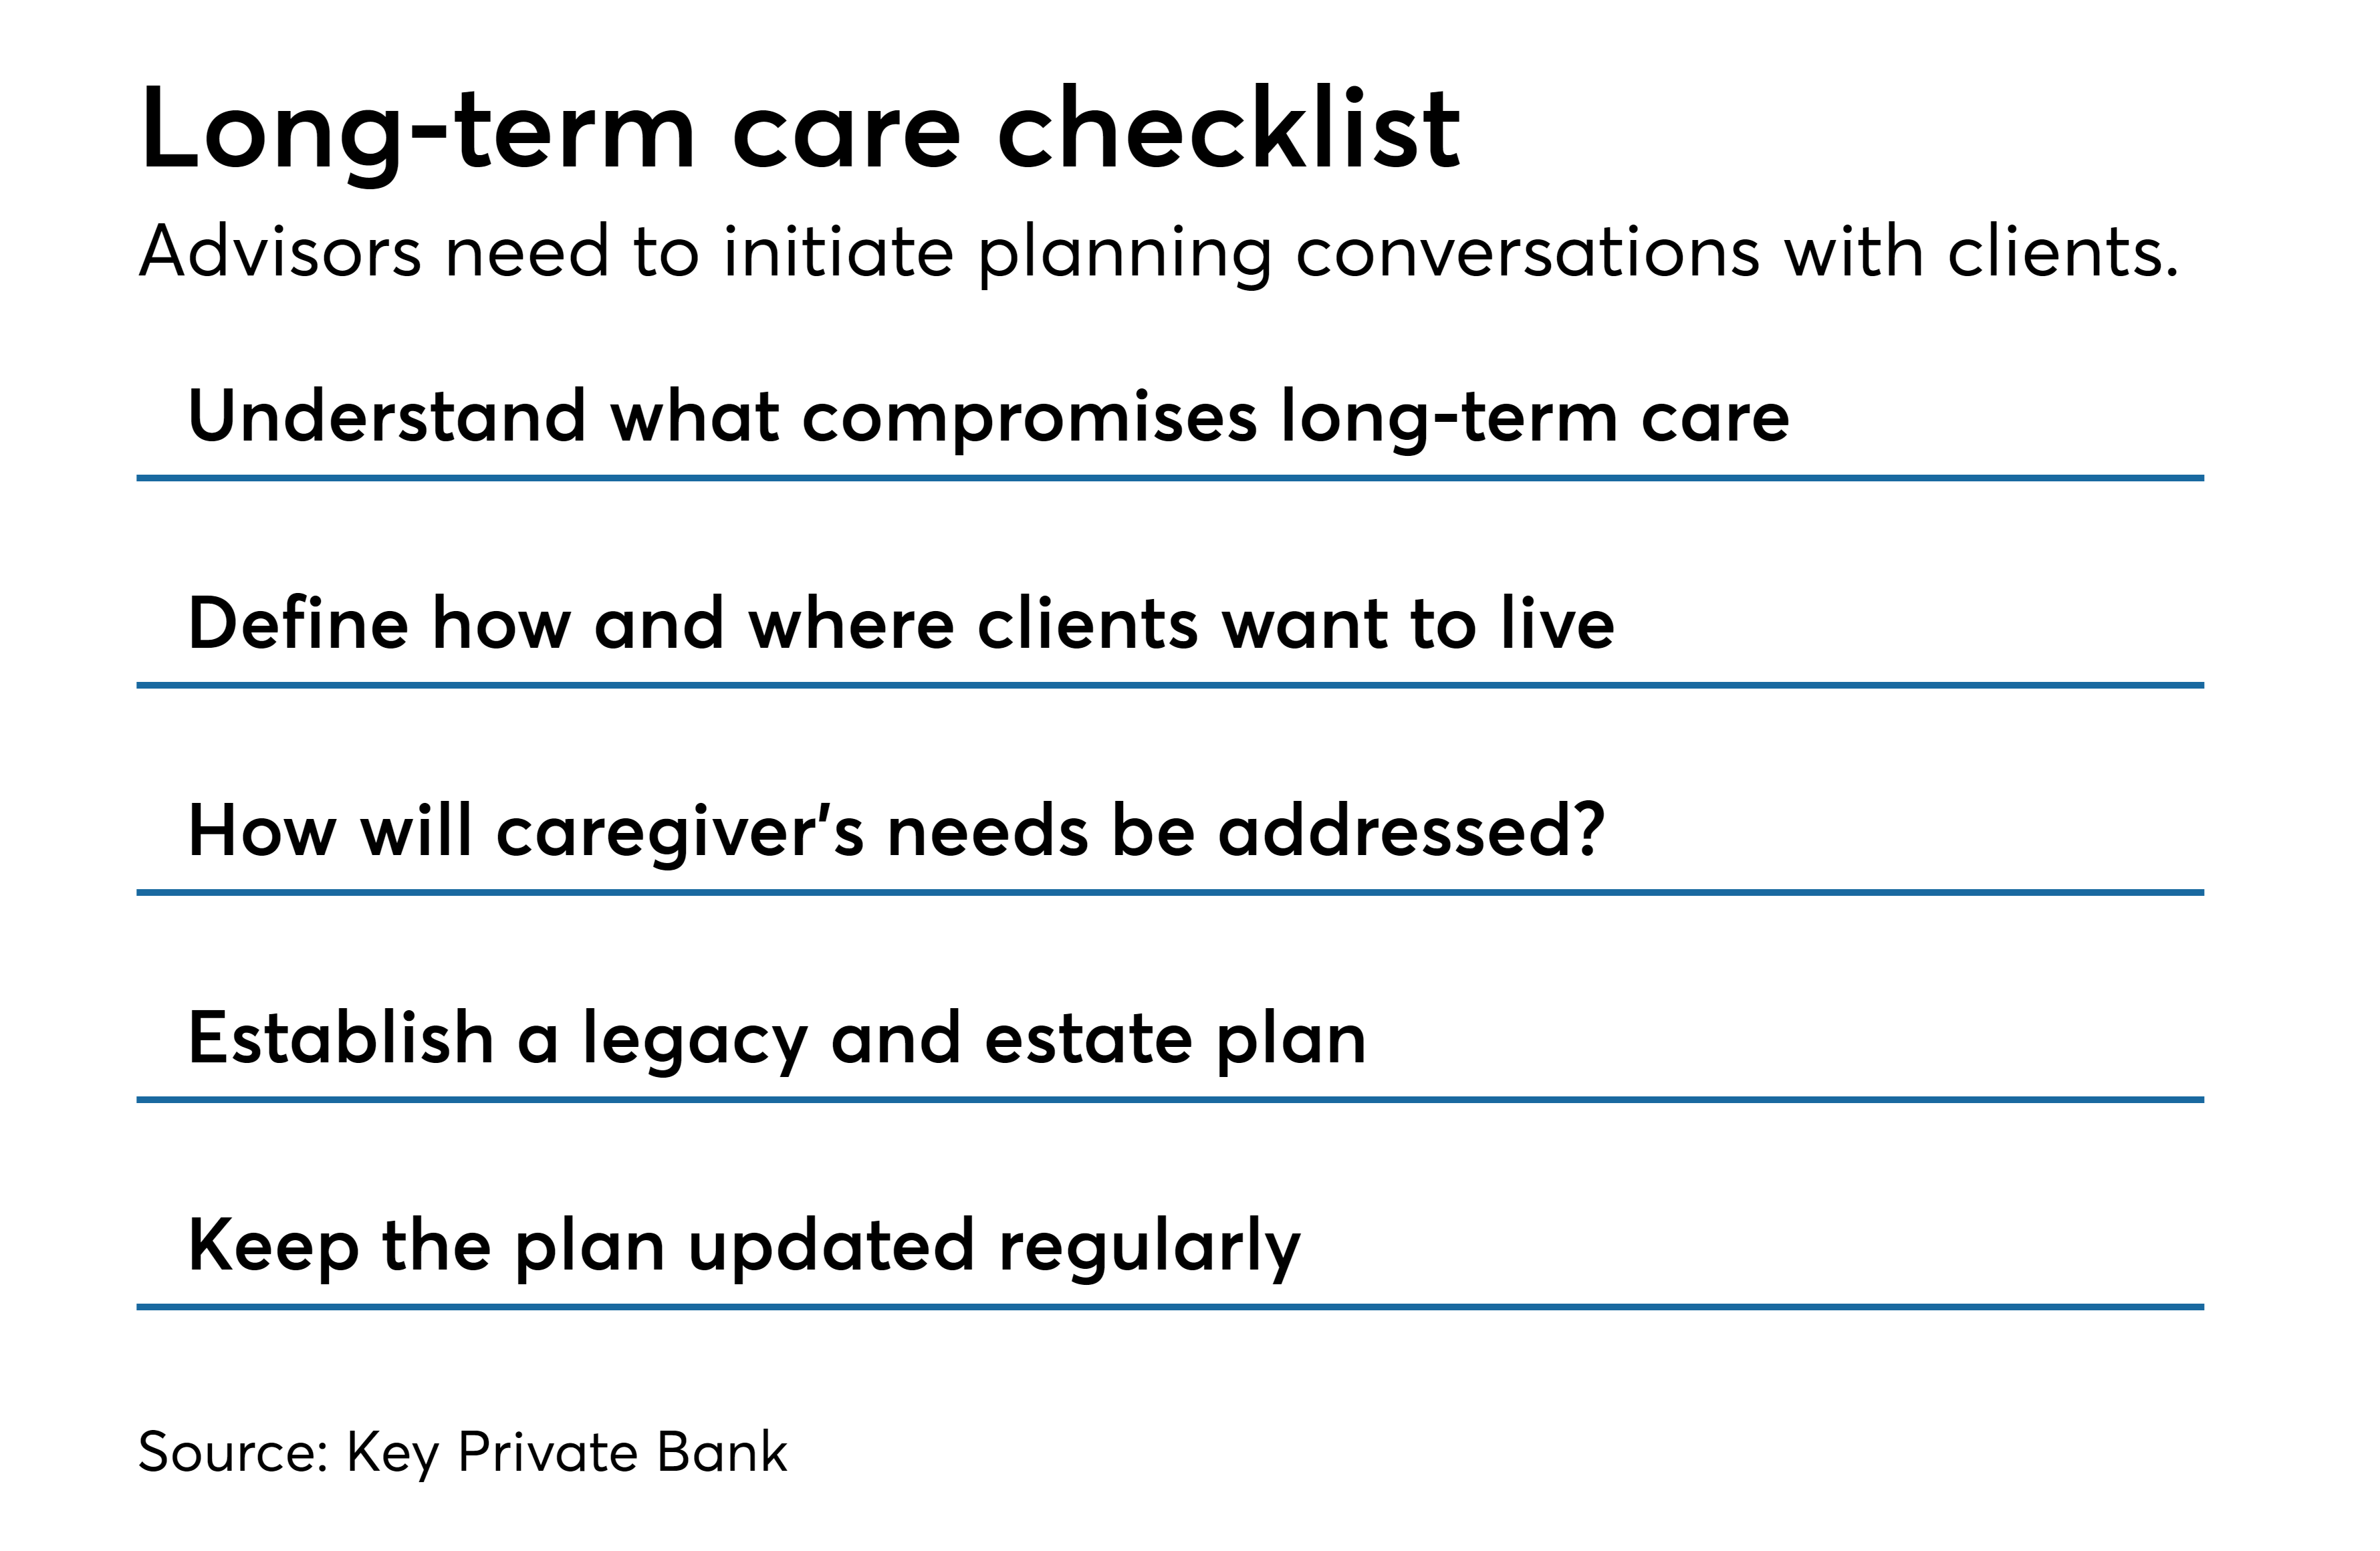 https://assets.sourcemedia.com/a1/54/7d5acbff4fd0887bdc9b1f6c6874/long-term-care-checklist.png